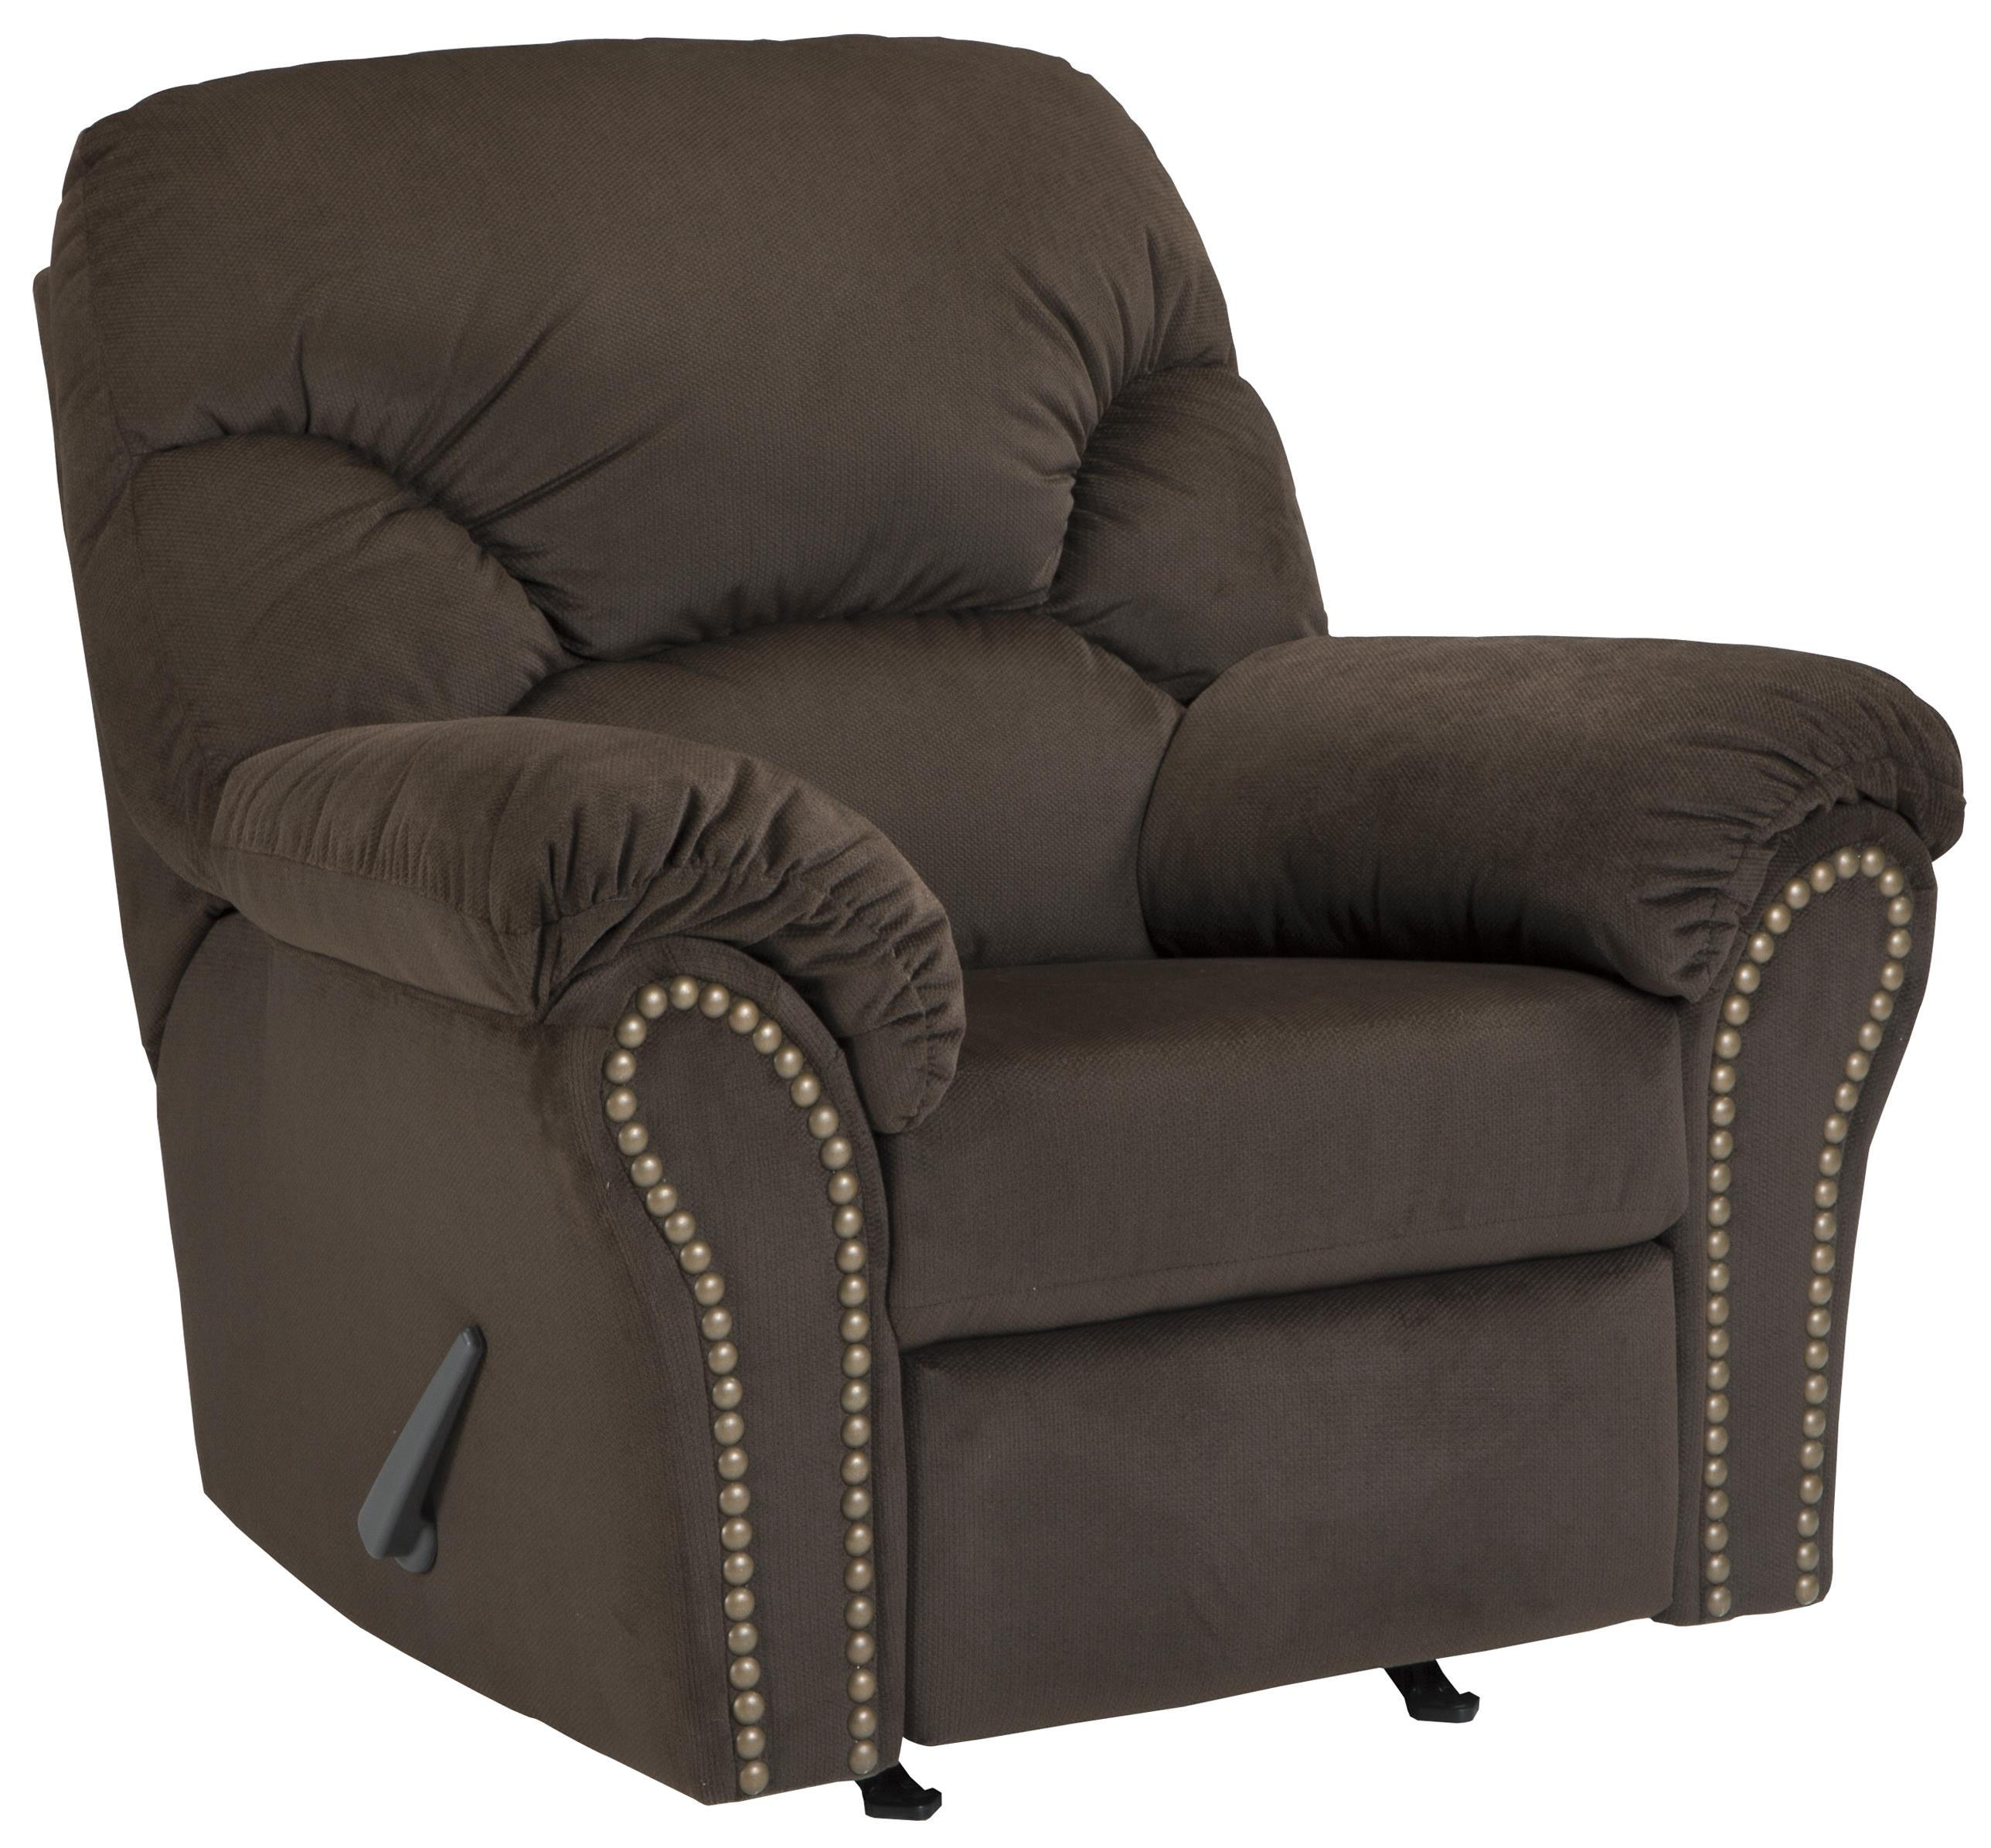 Signature Design by Ashley Kinlock Rocker Recliner - Item Number: 3340125